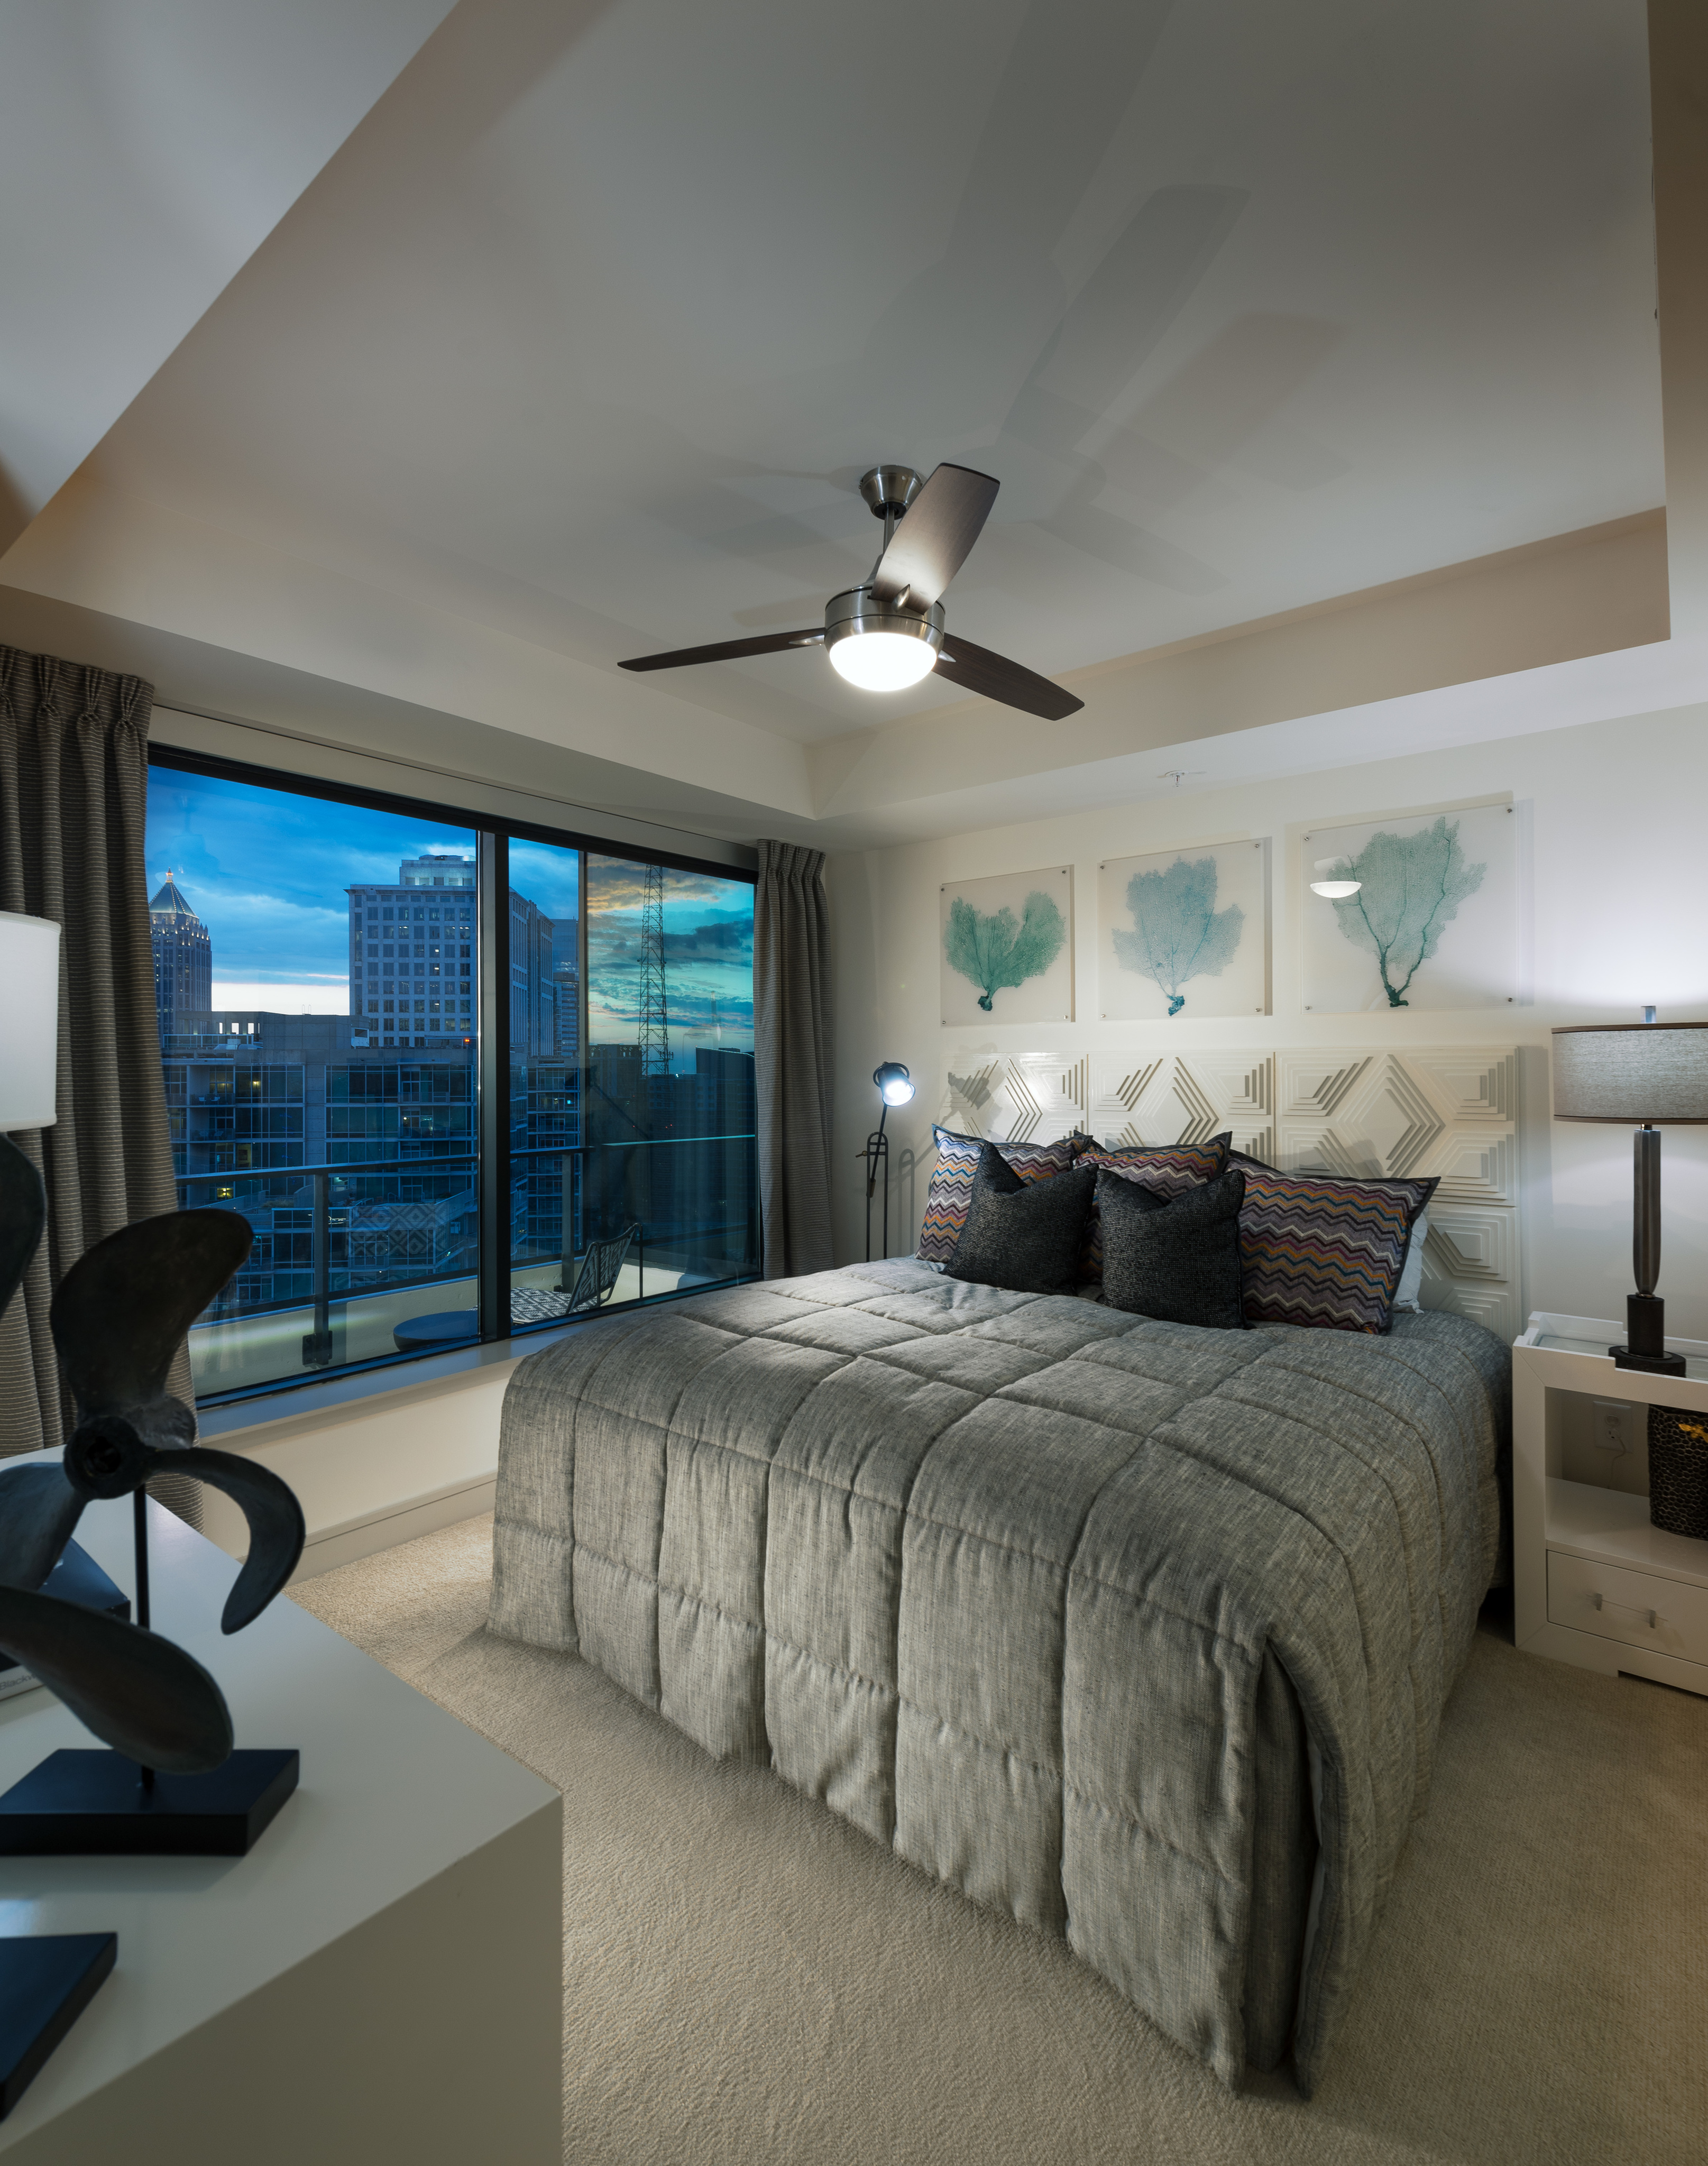 Image of Ample Bedrooms that Accommodate King-Size Beds for Hanover Midtown